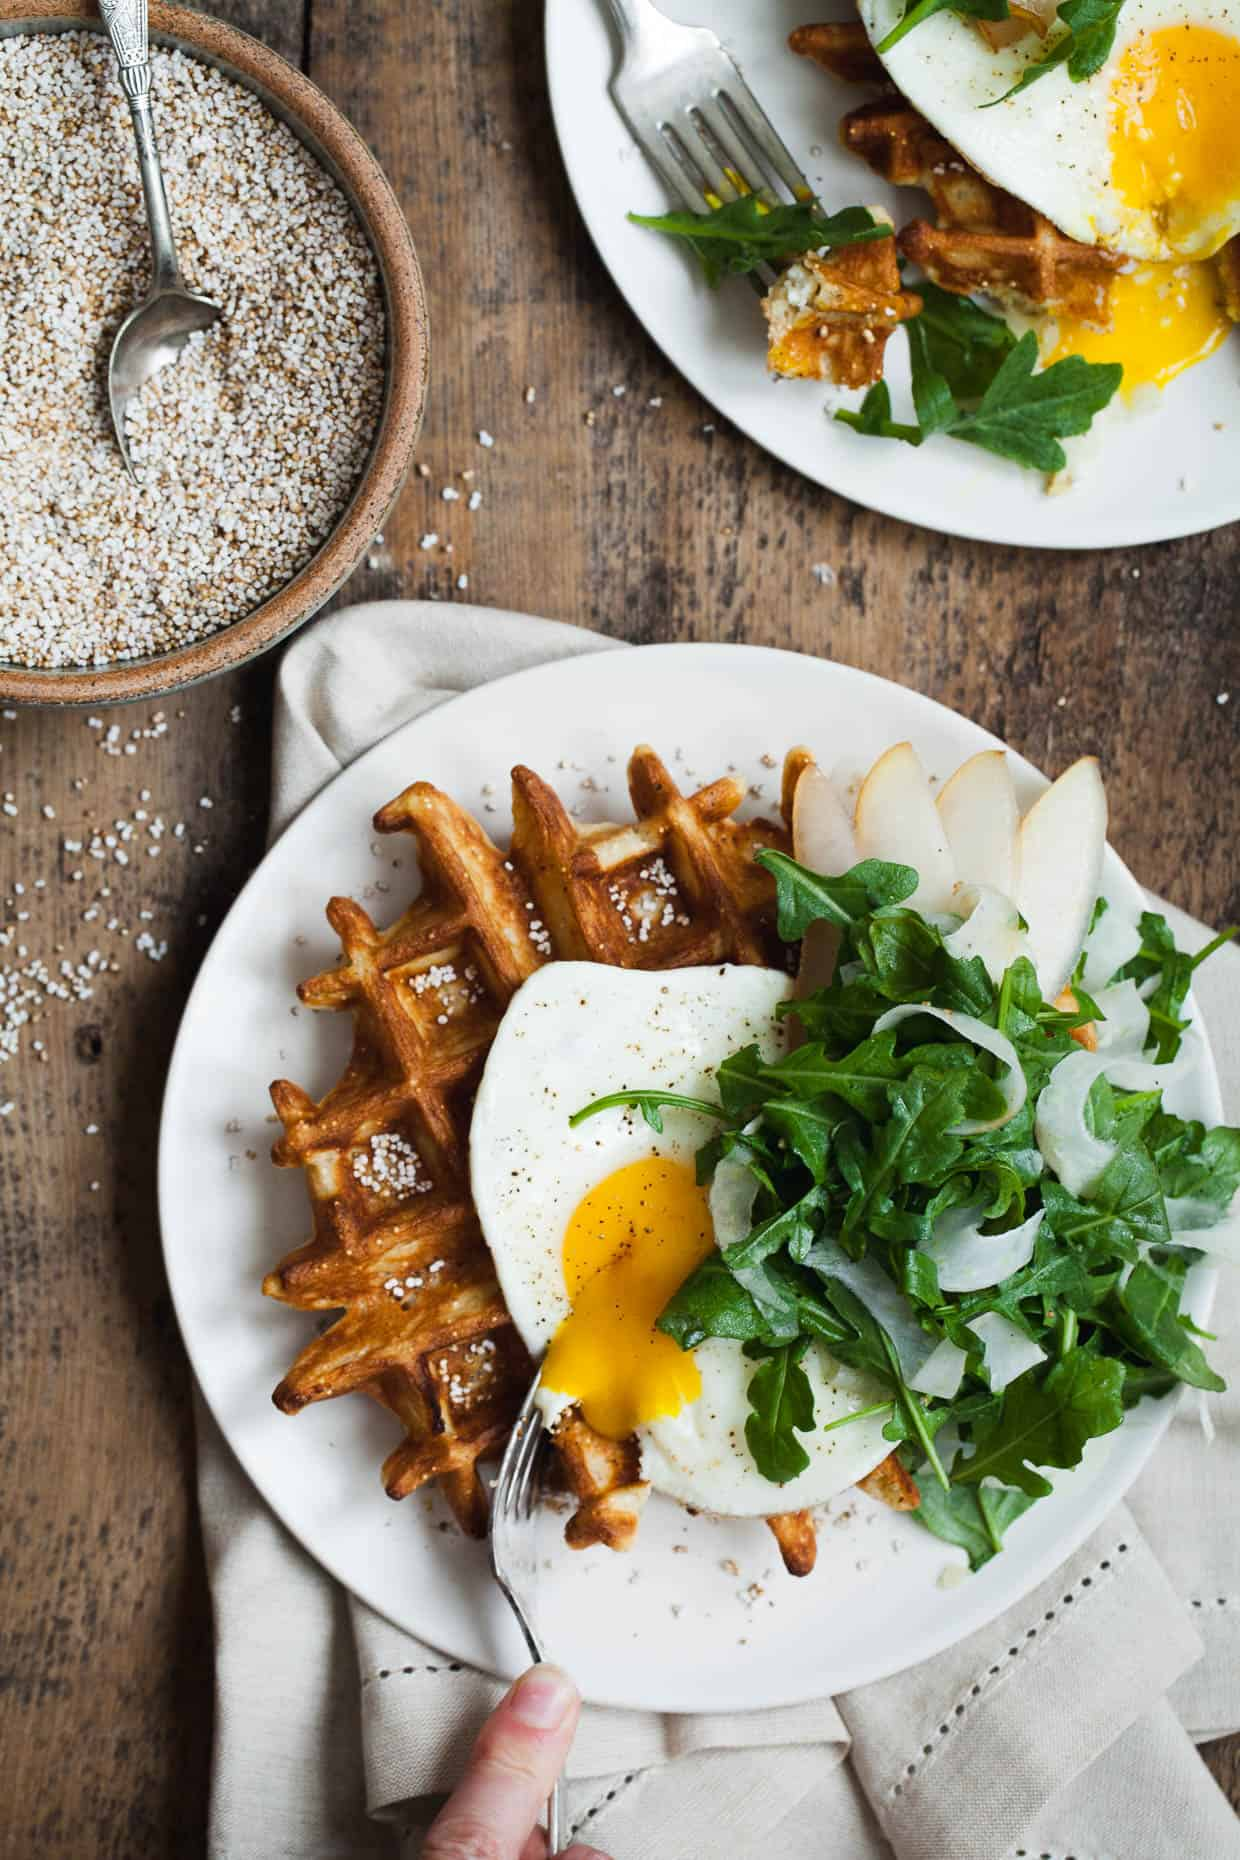 Gluten-free Savory Amaranth Waffles - Snixy Kitchen - Snixy Kitchen